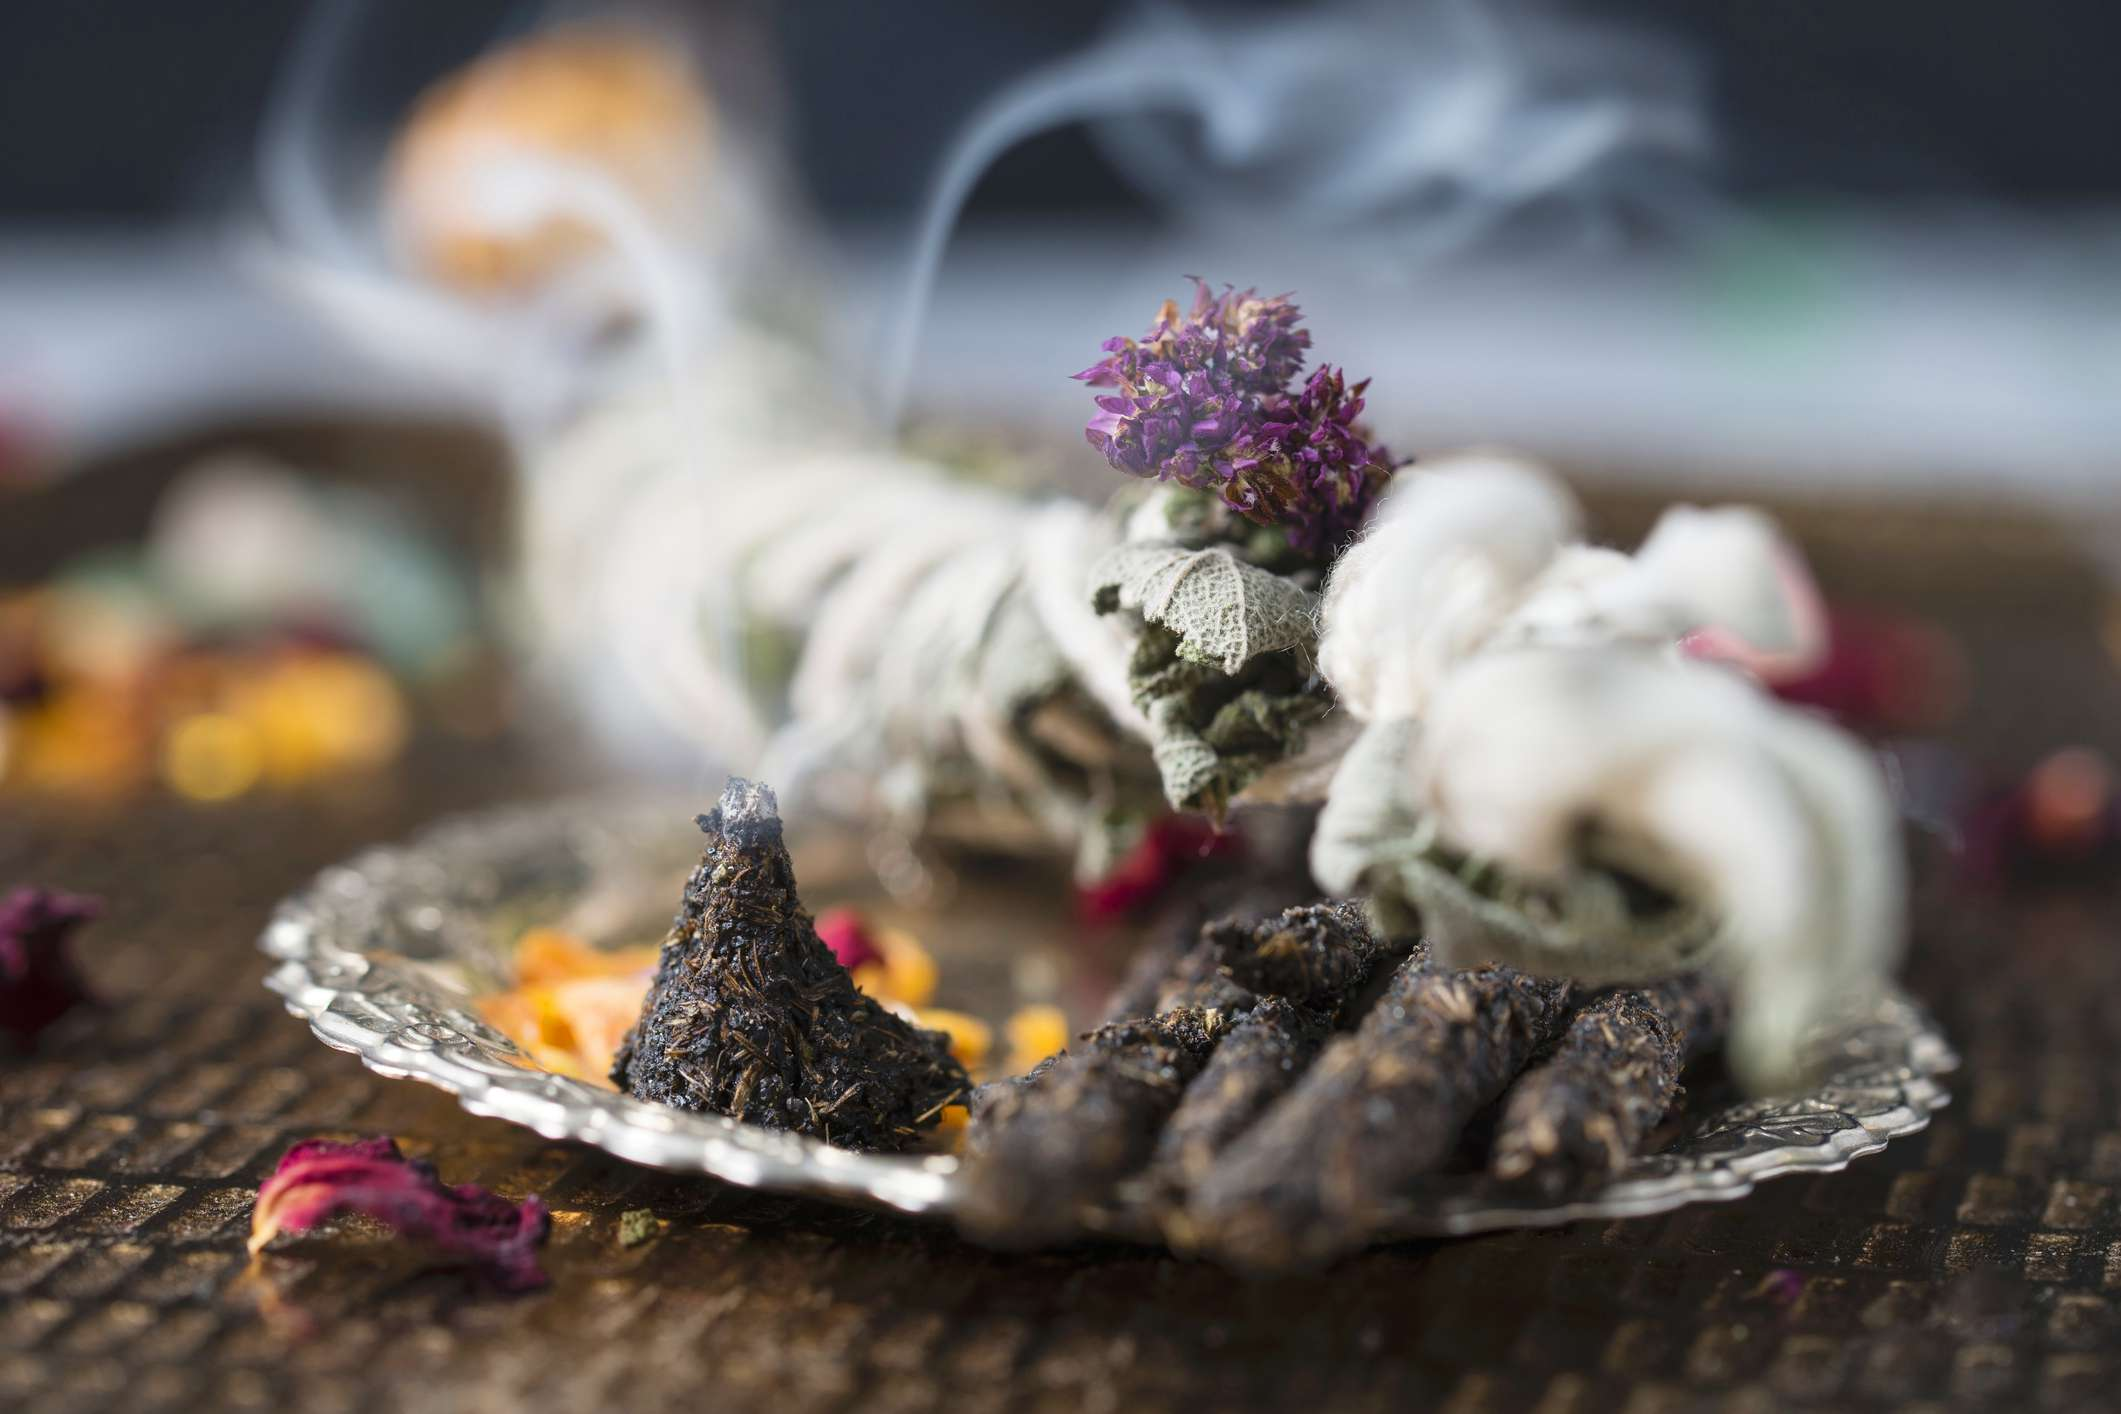 Smudging with herbs and sage for space clearing